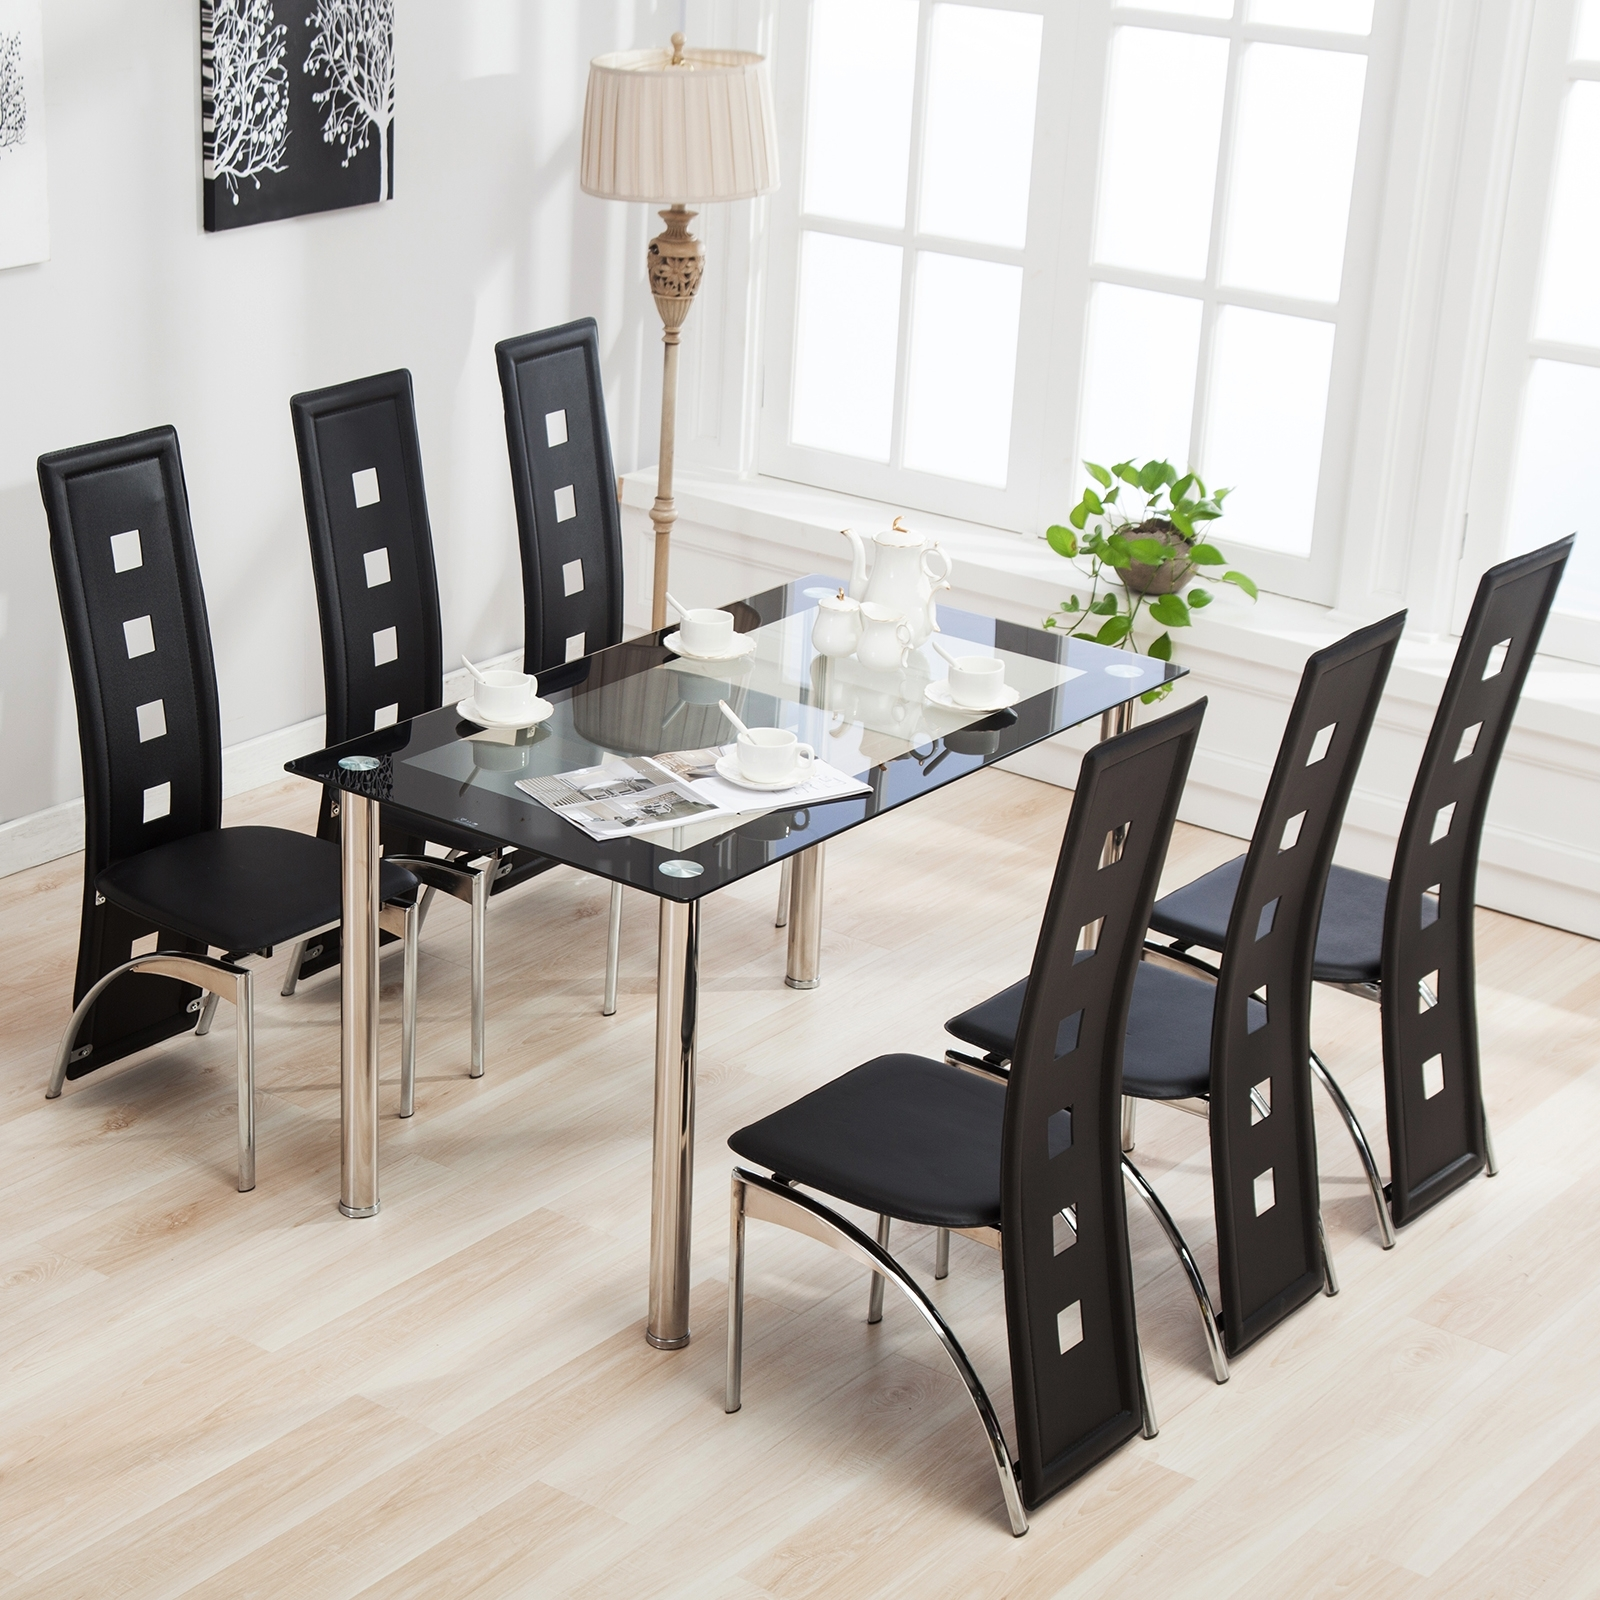 Recent Dining Tables With 6 Chairs within Mecor 7Pcs Dining Table Set 6 Chairs Glass Metal Kitchen Room